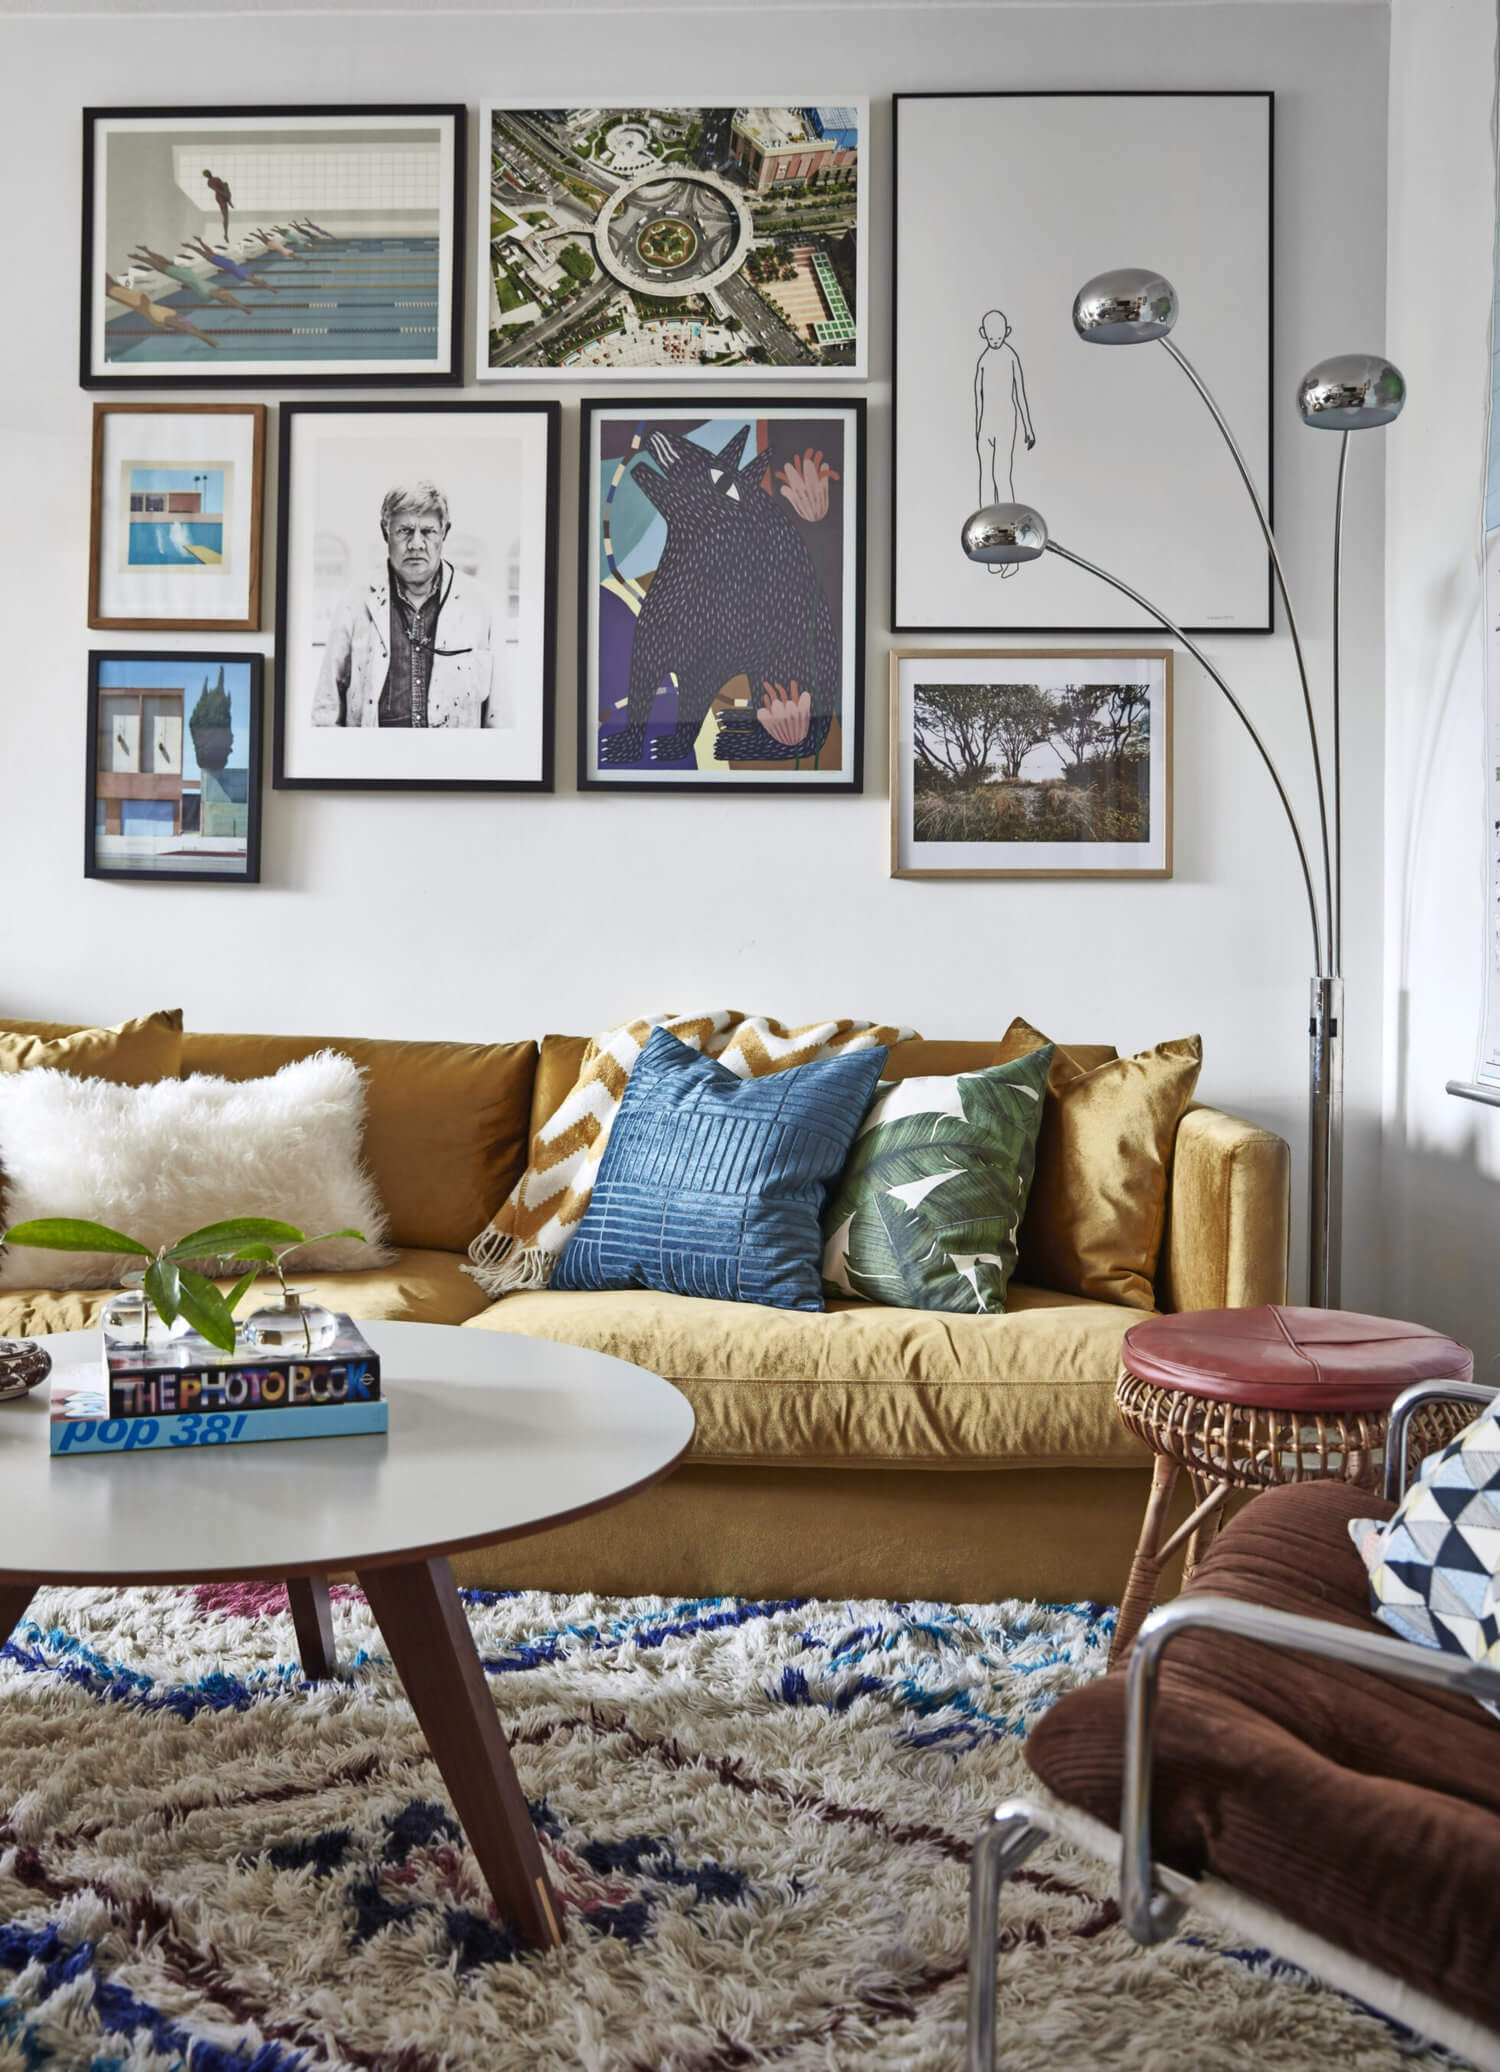 Cozy Textures In A Vintage Apartment in Stockholm